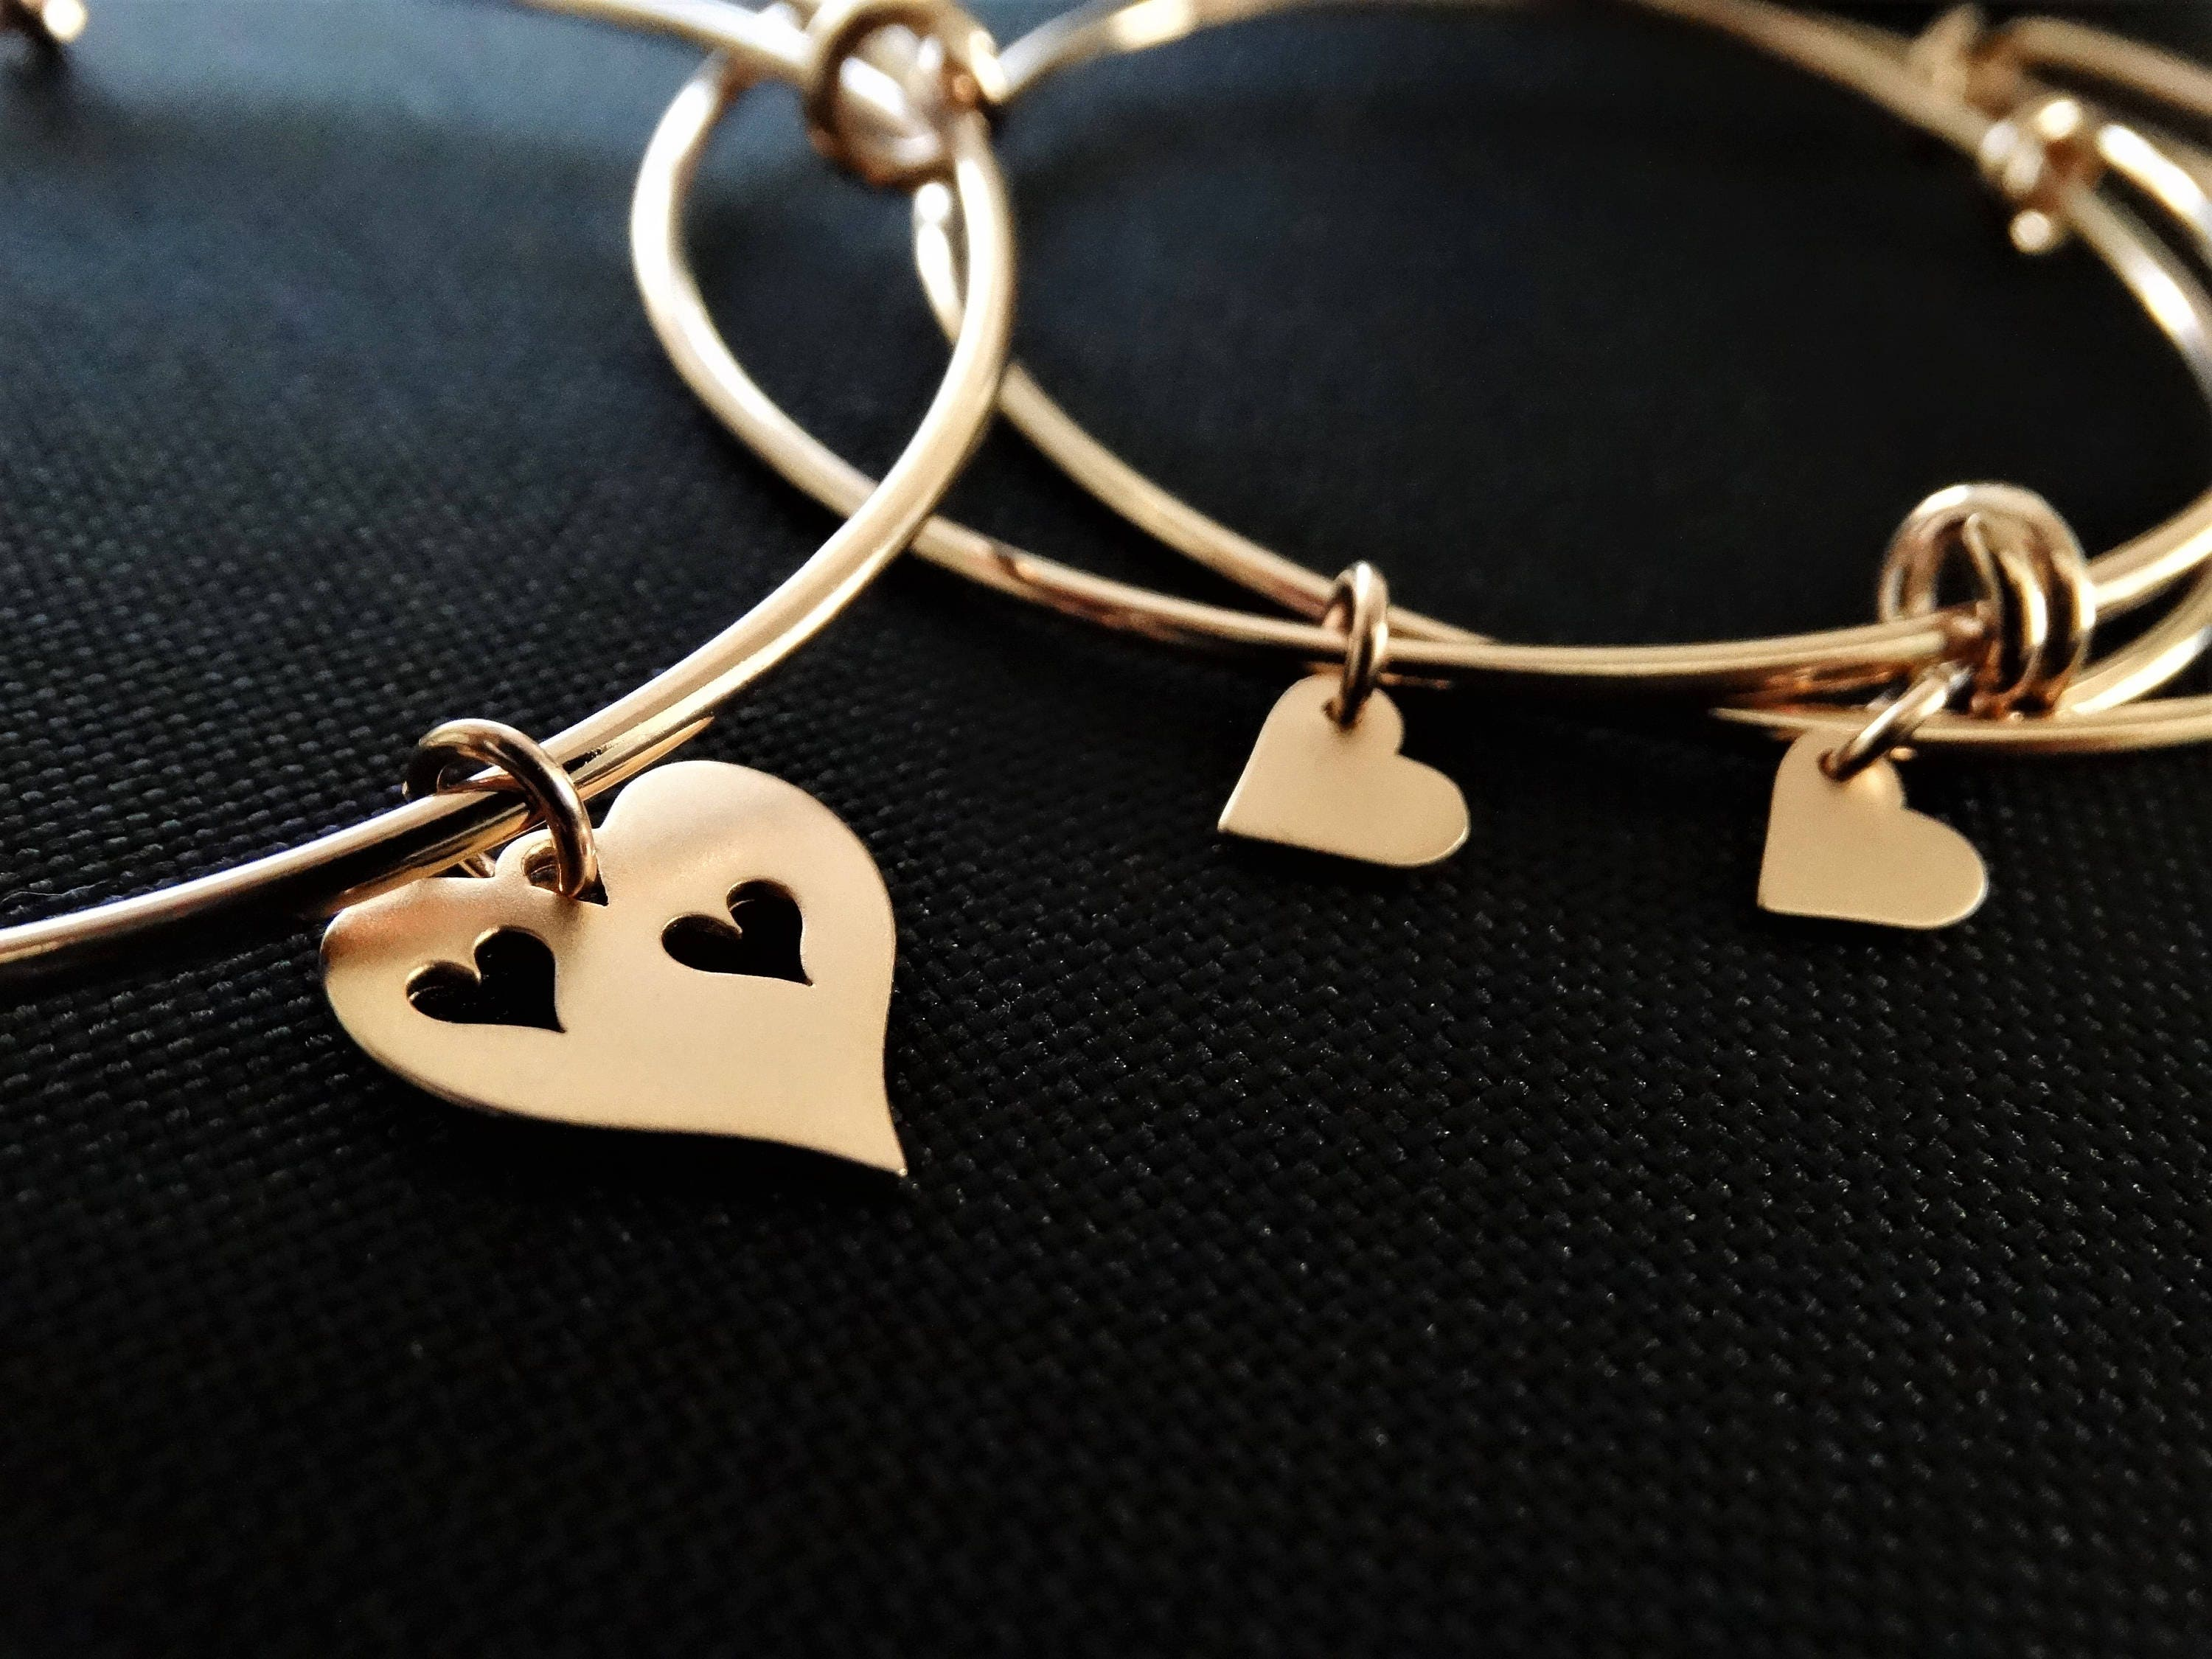 bracelets jewelry sister tjzu best bracelet mother to gift jewellery charm friend p fullxfull bangle il butterfly daughter